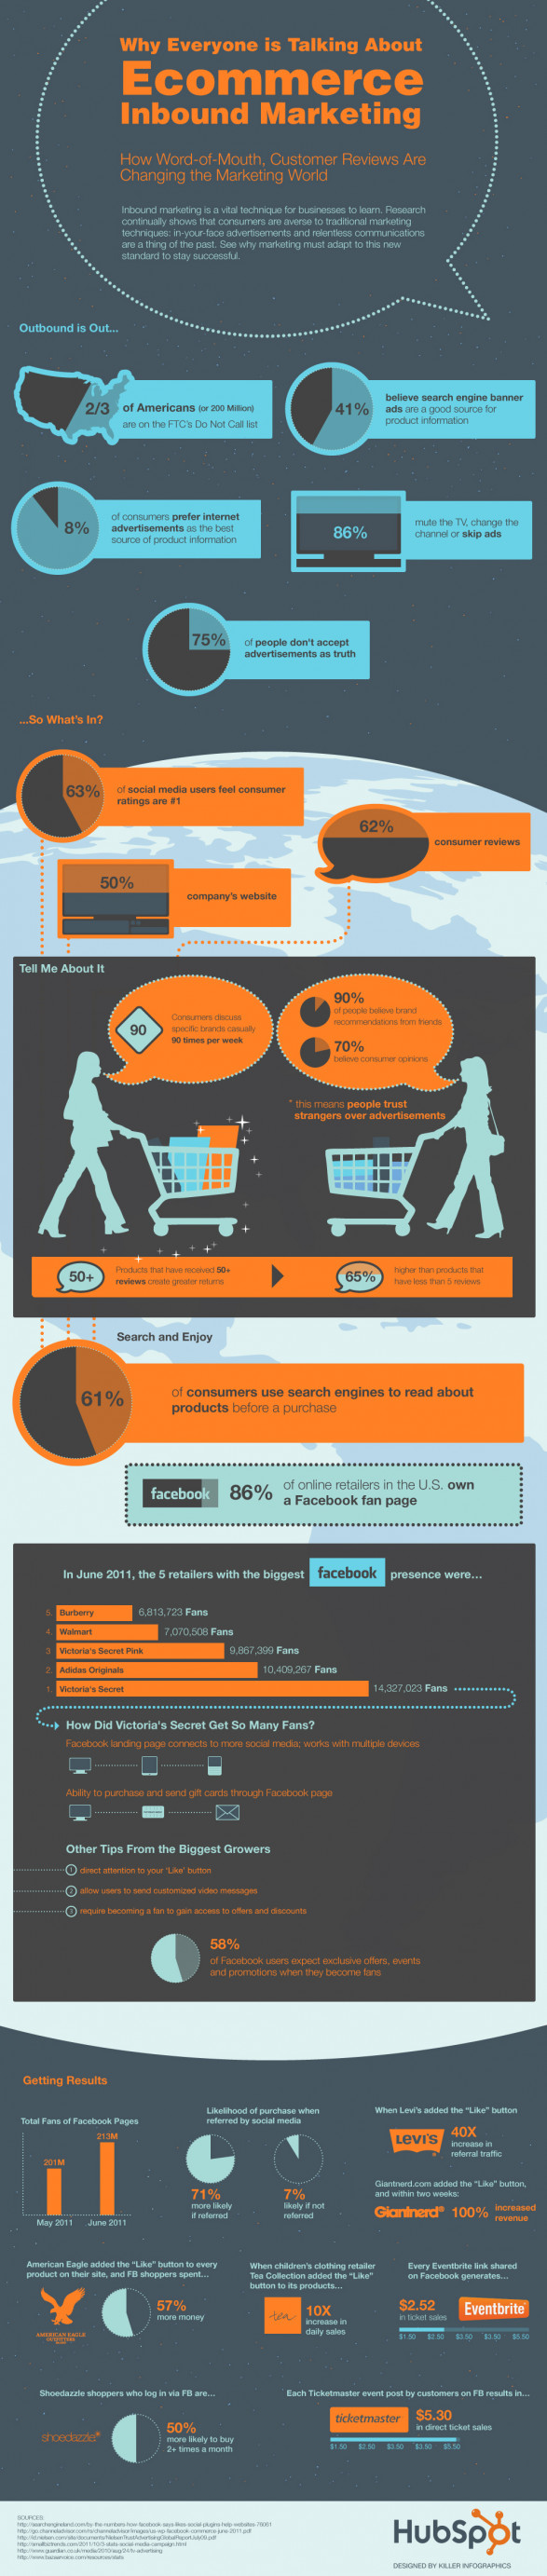 71% More Likely to Purchase Based on Social Media Referrals